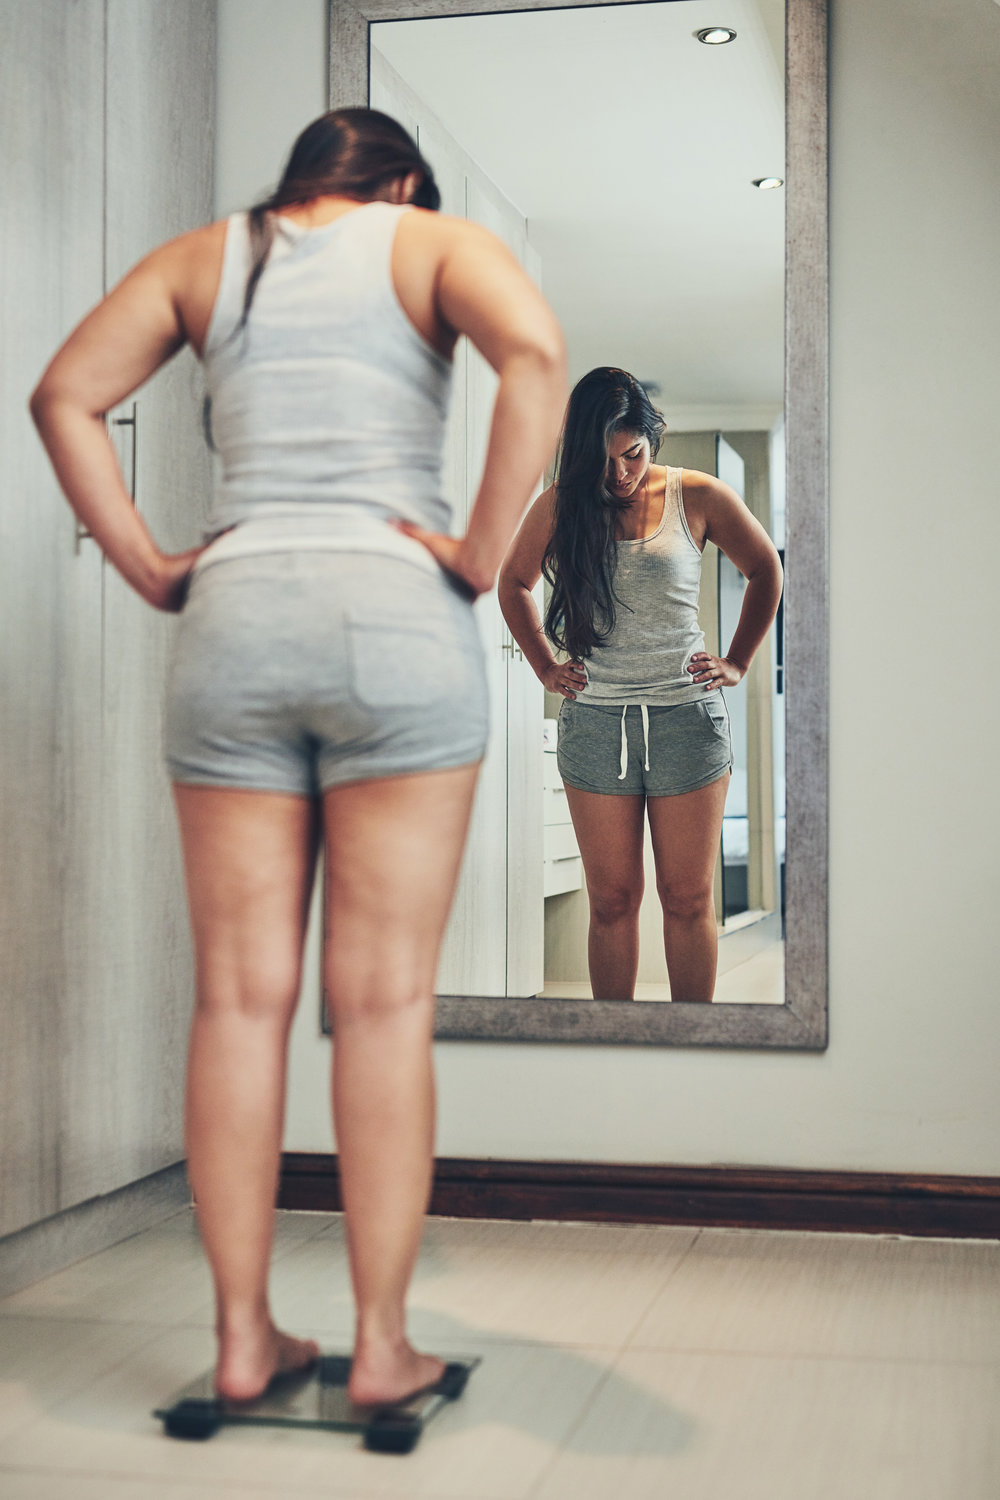 Body Image & Disordered Eating